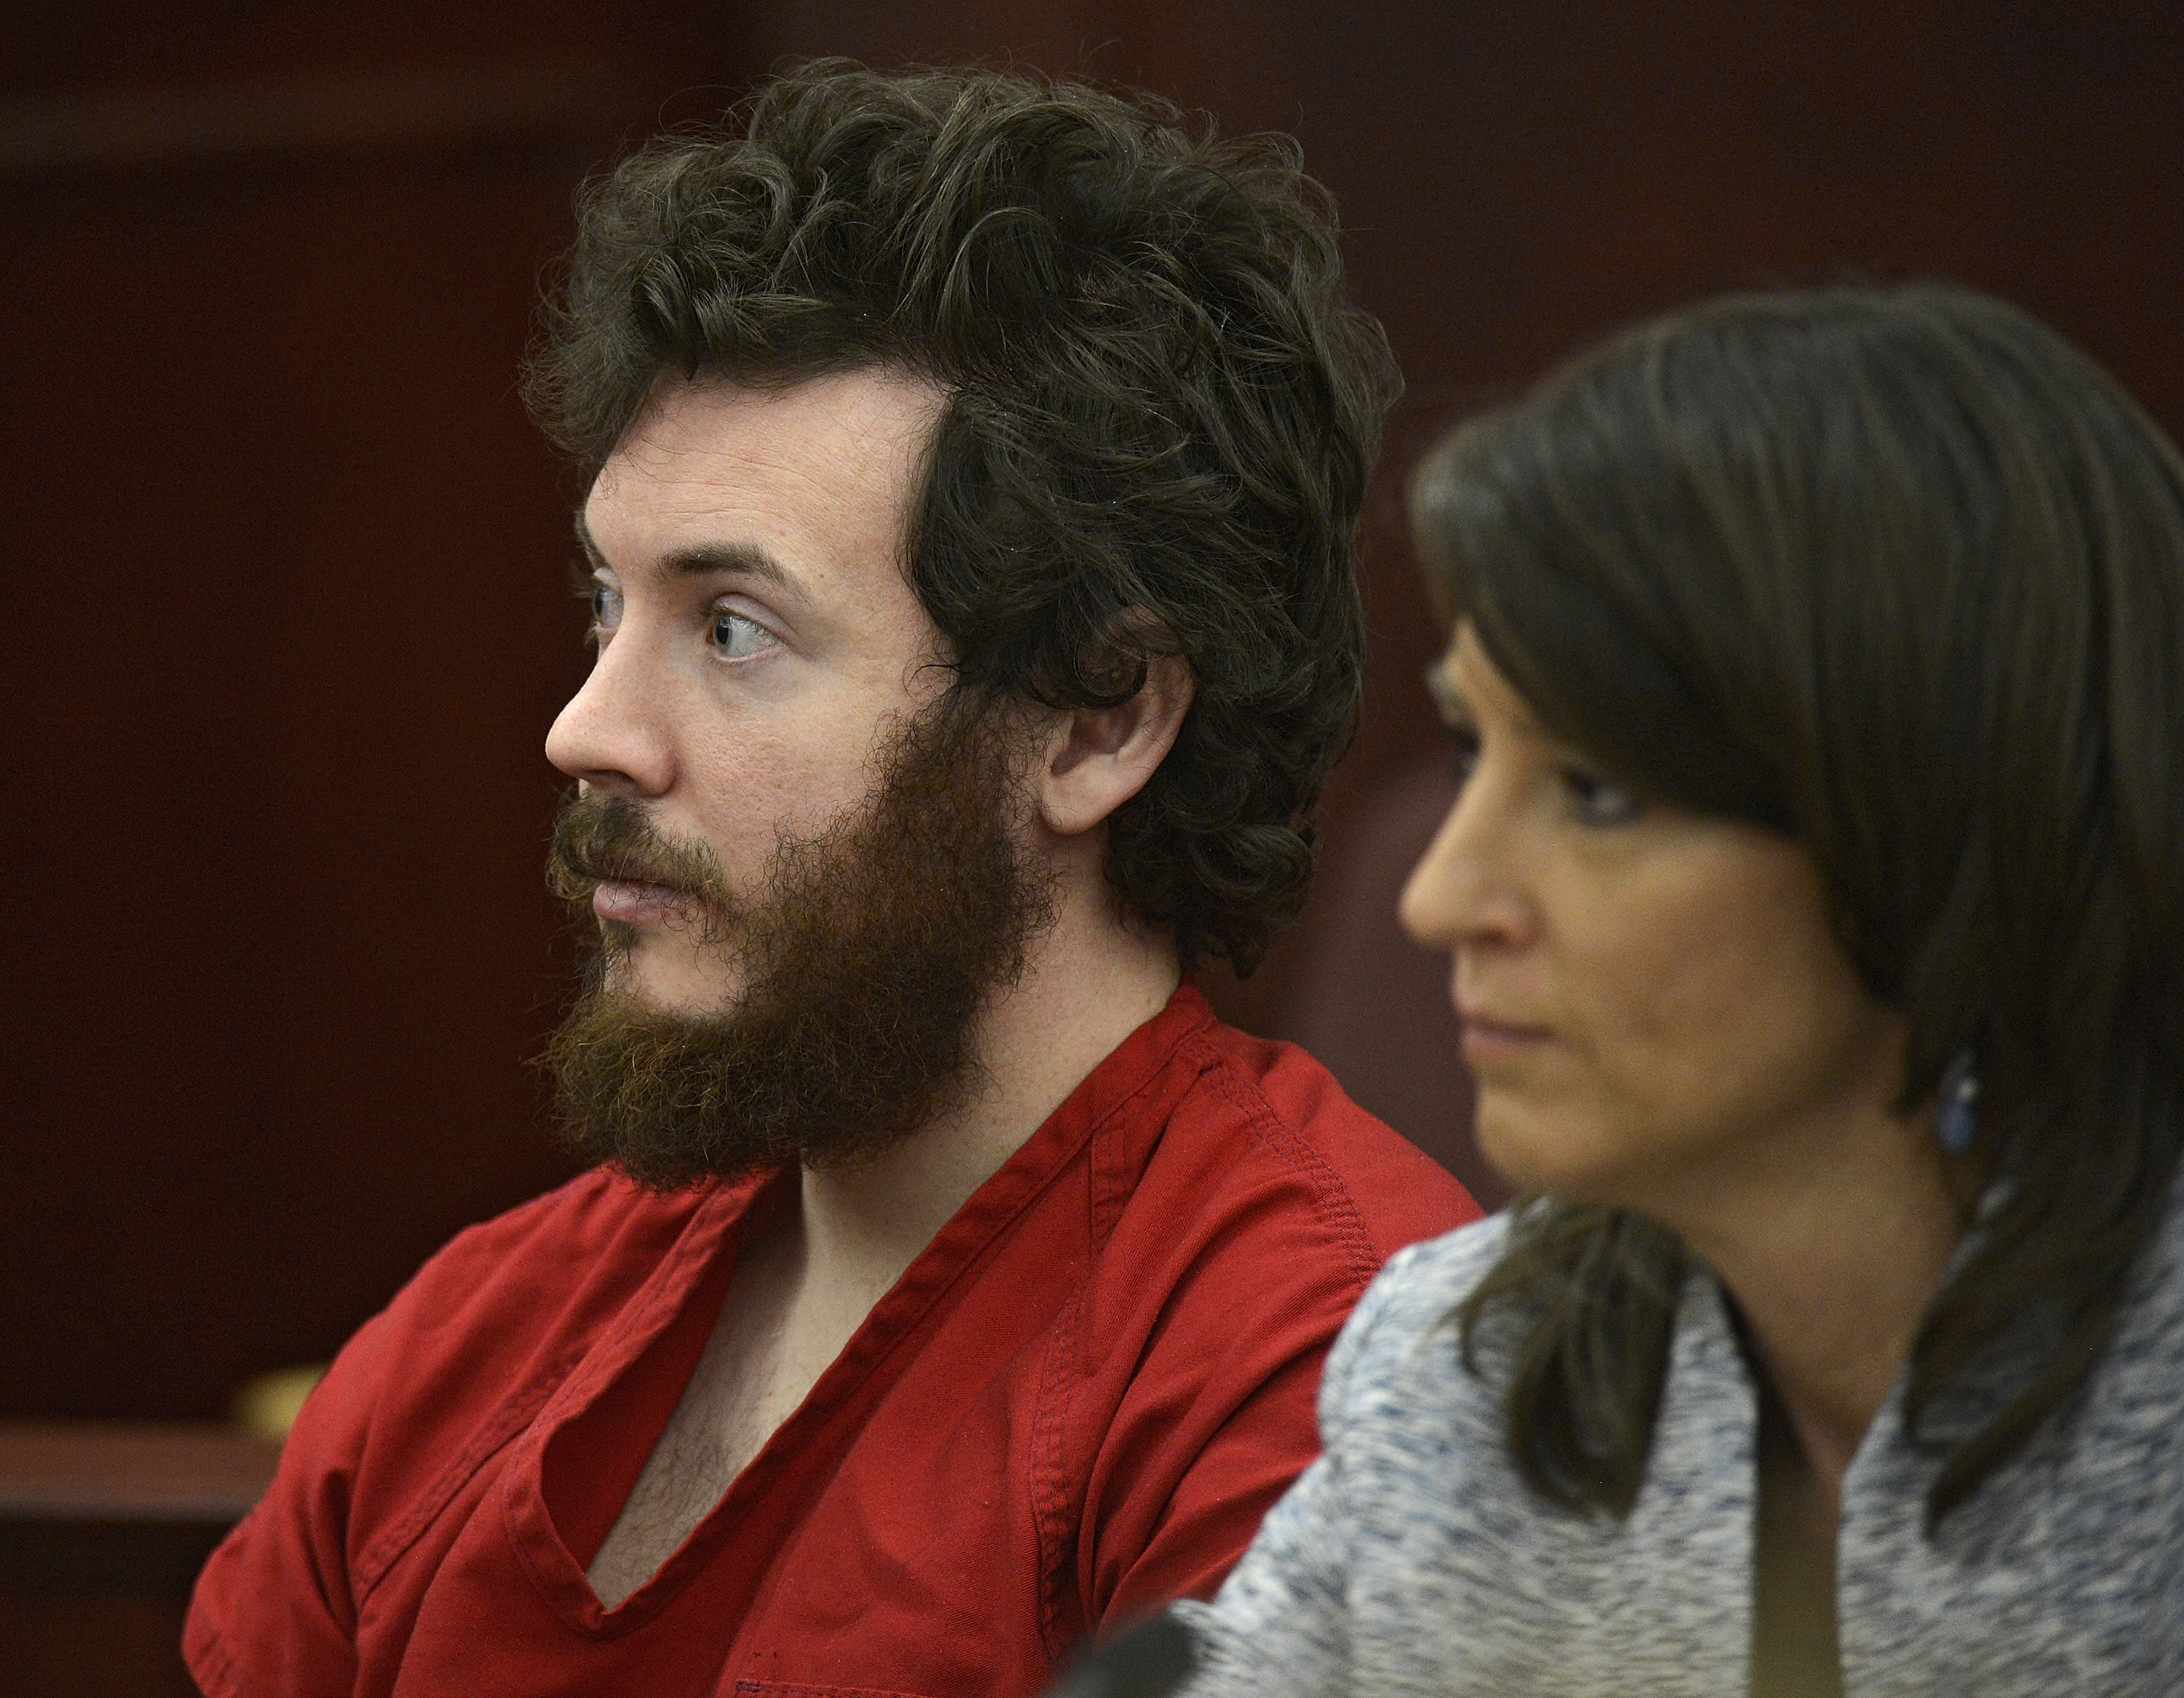 On video, theater gunman says killings got him 'value units'